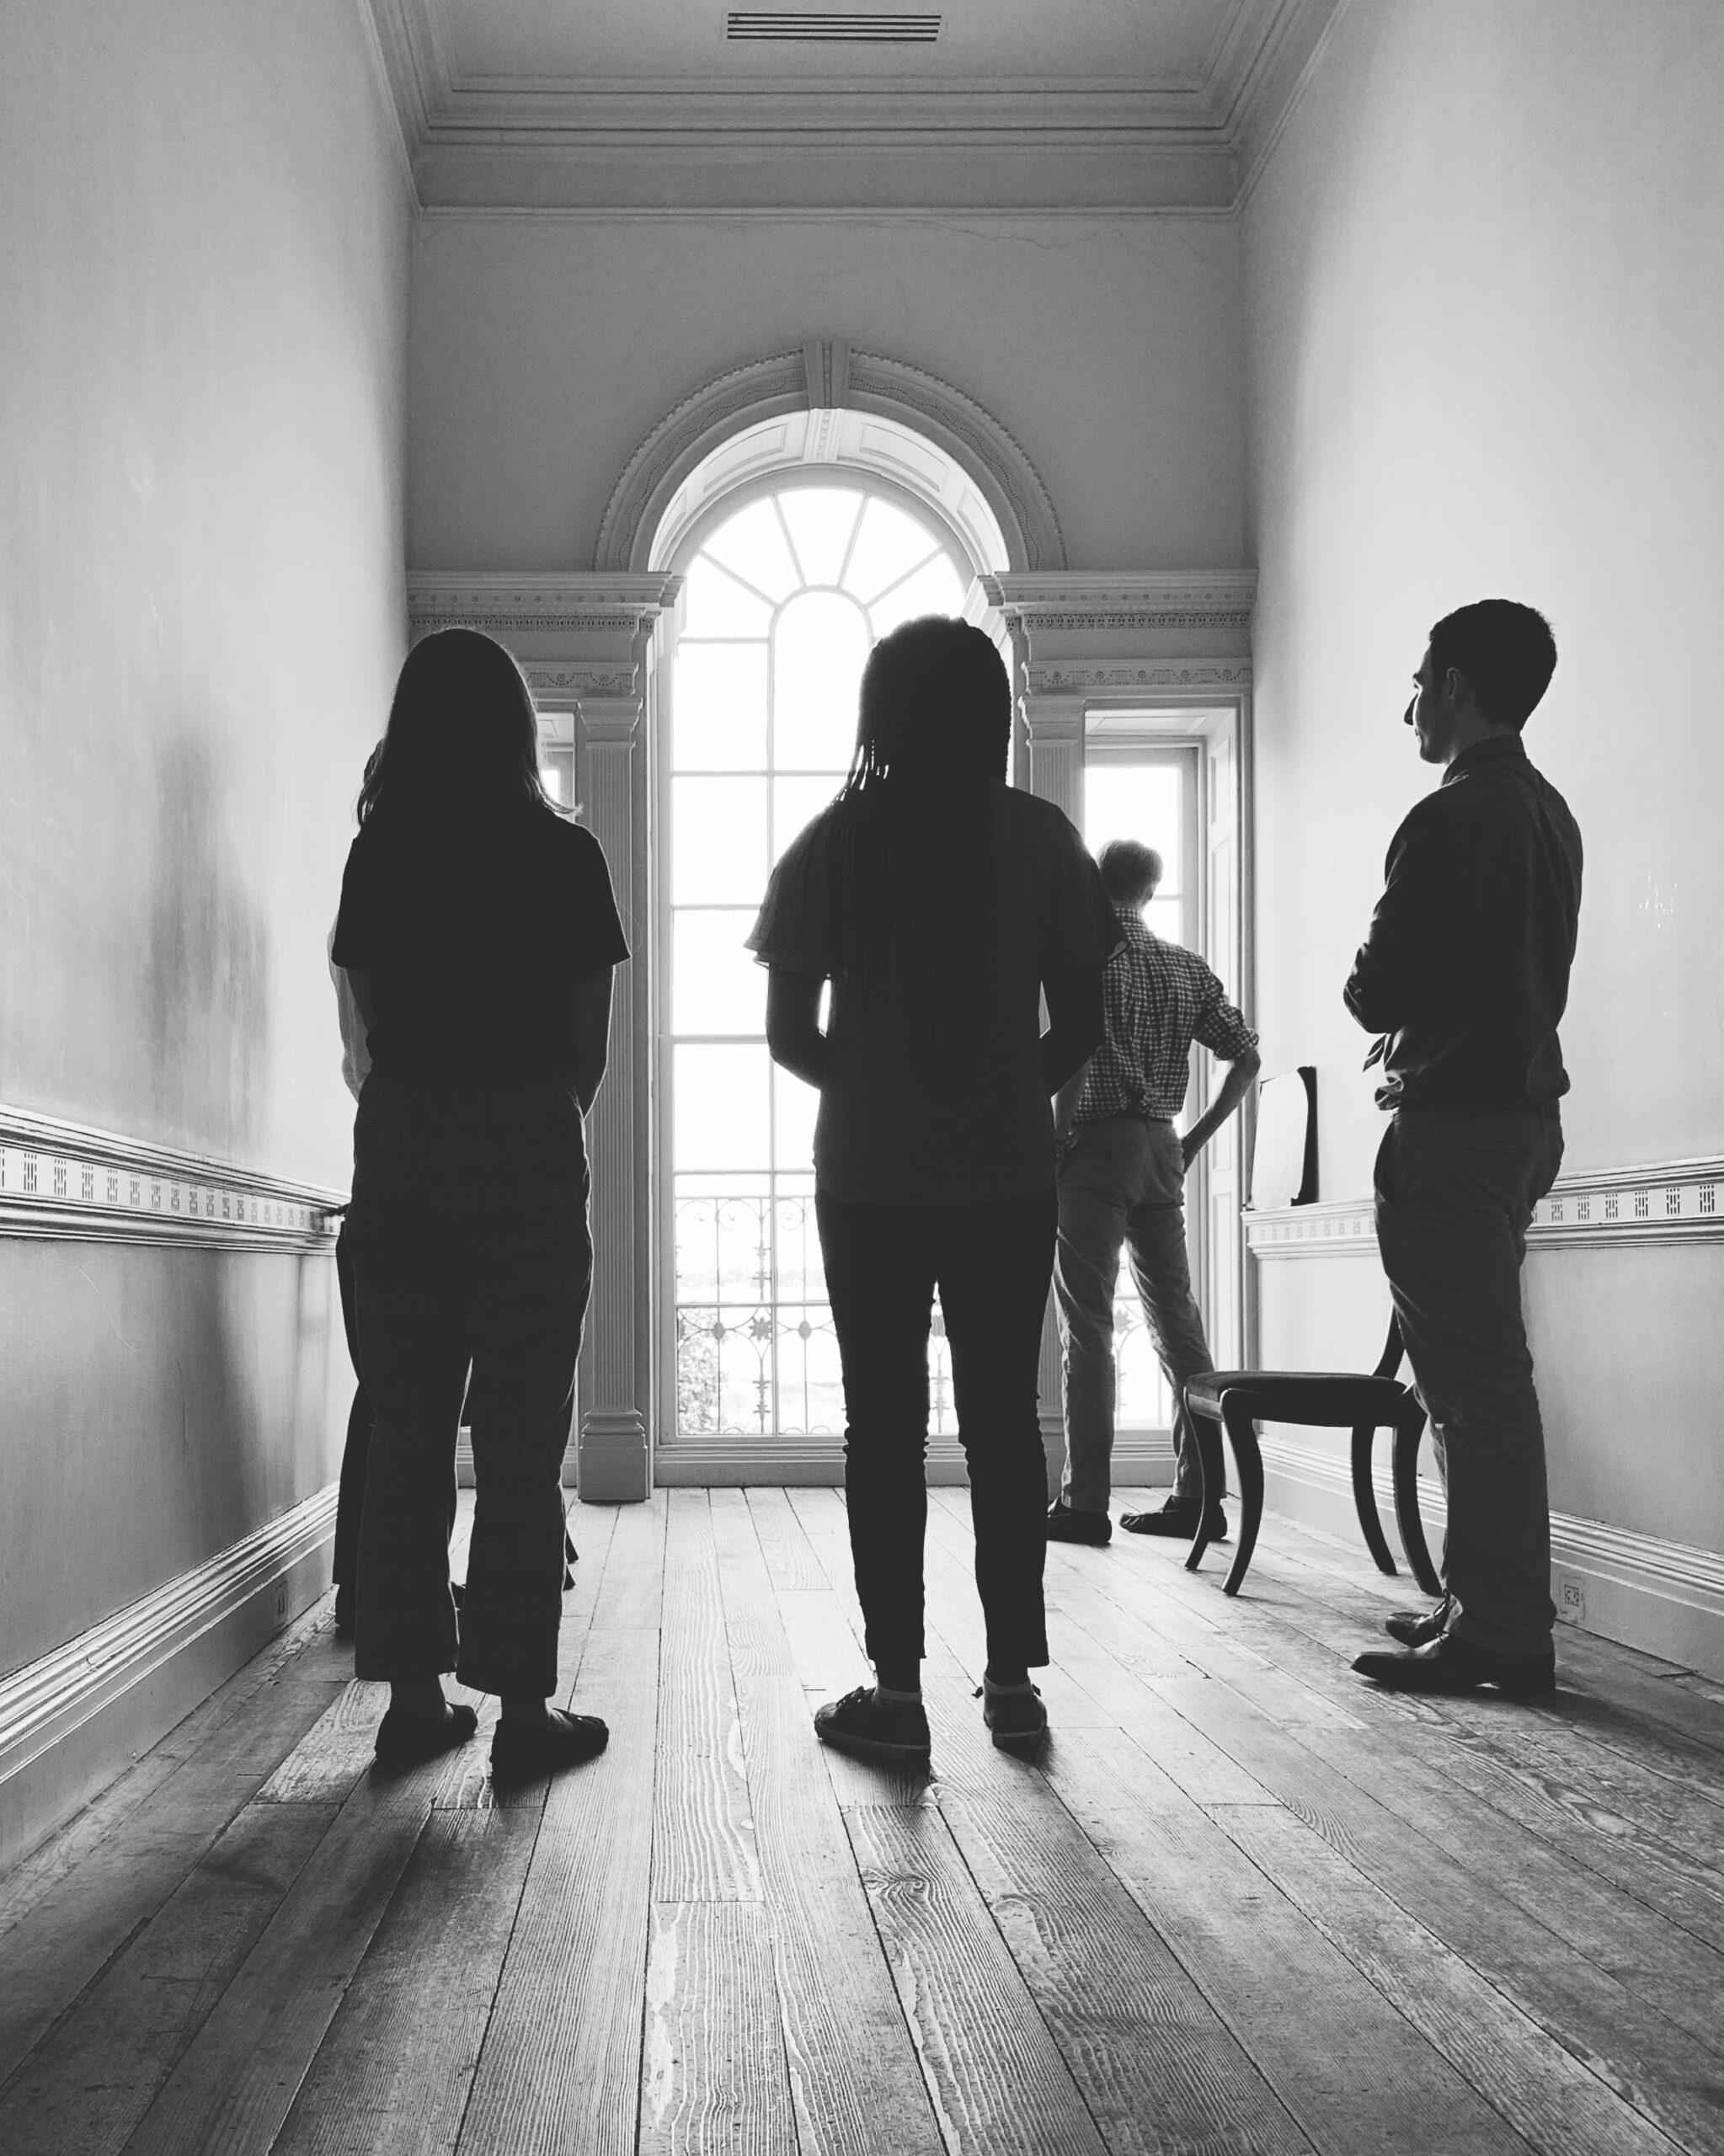 black-and-white photo of a group of people facing a window